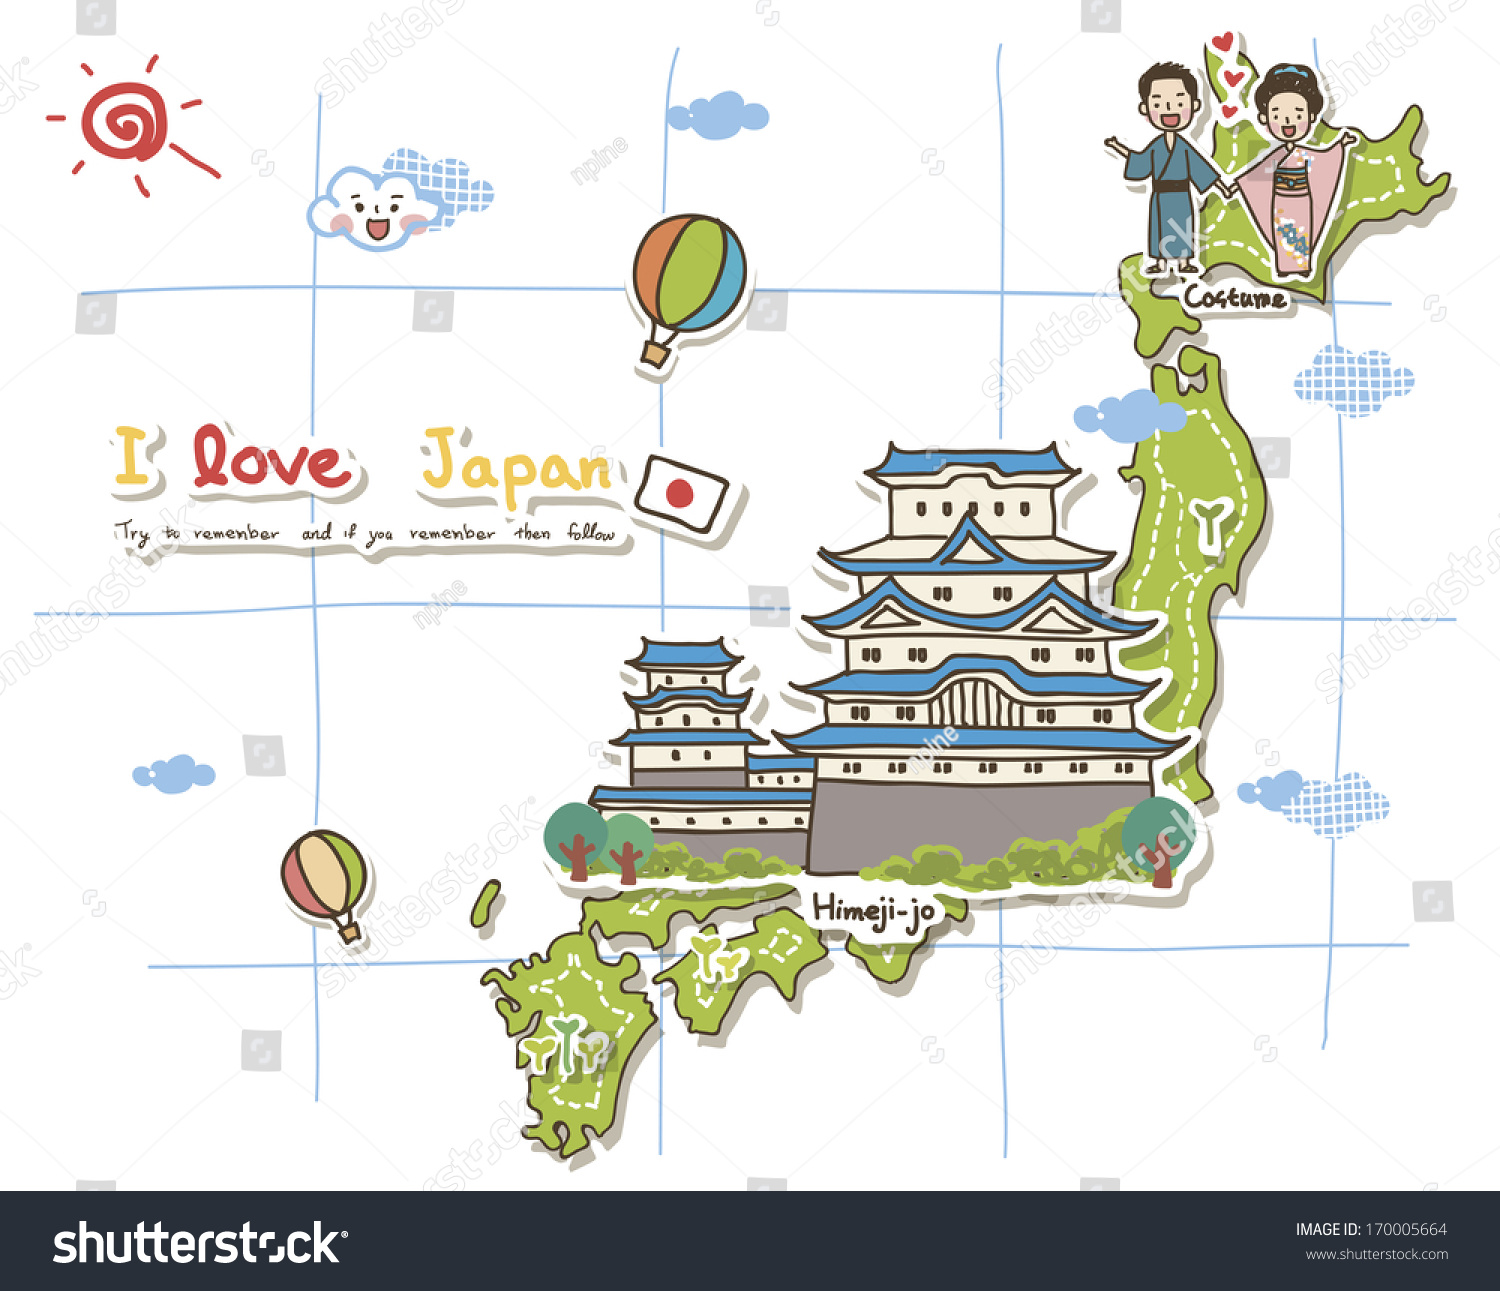 Map Depicting Tourist Attractions Japan Illustration – Japan Tourist Map